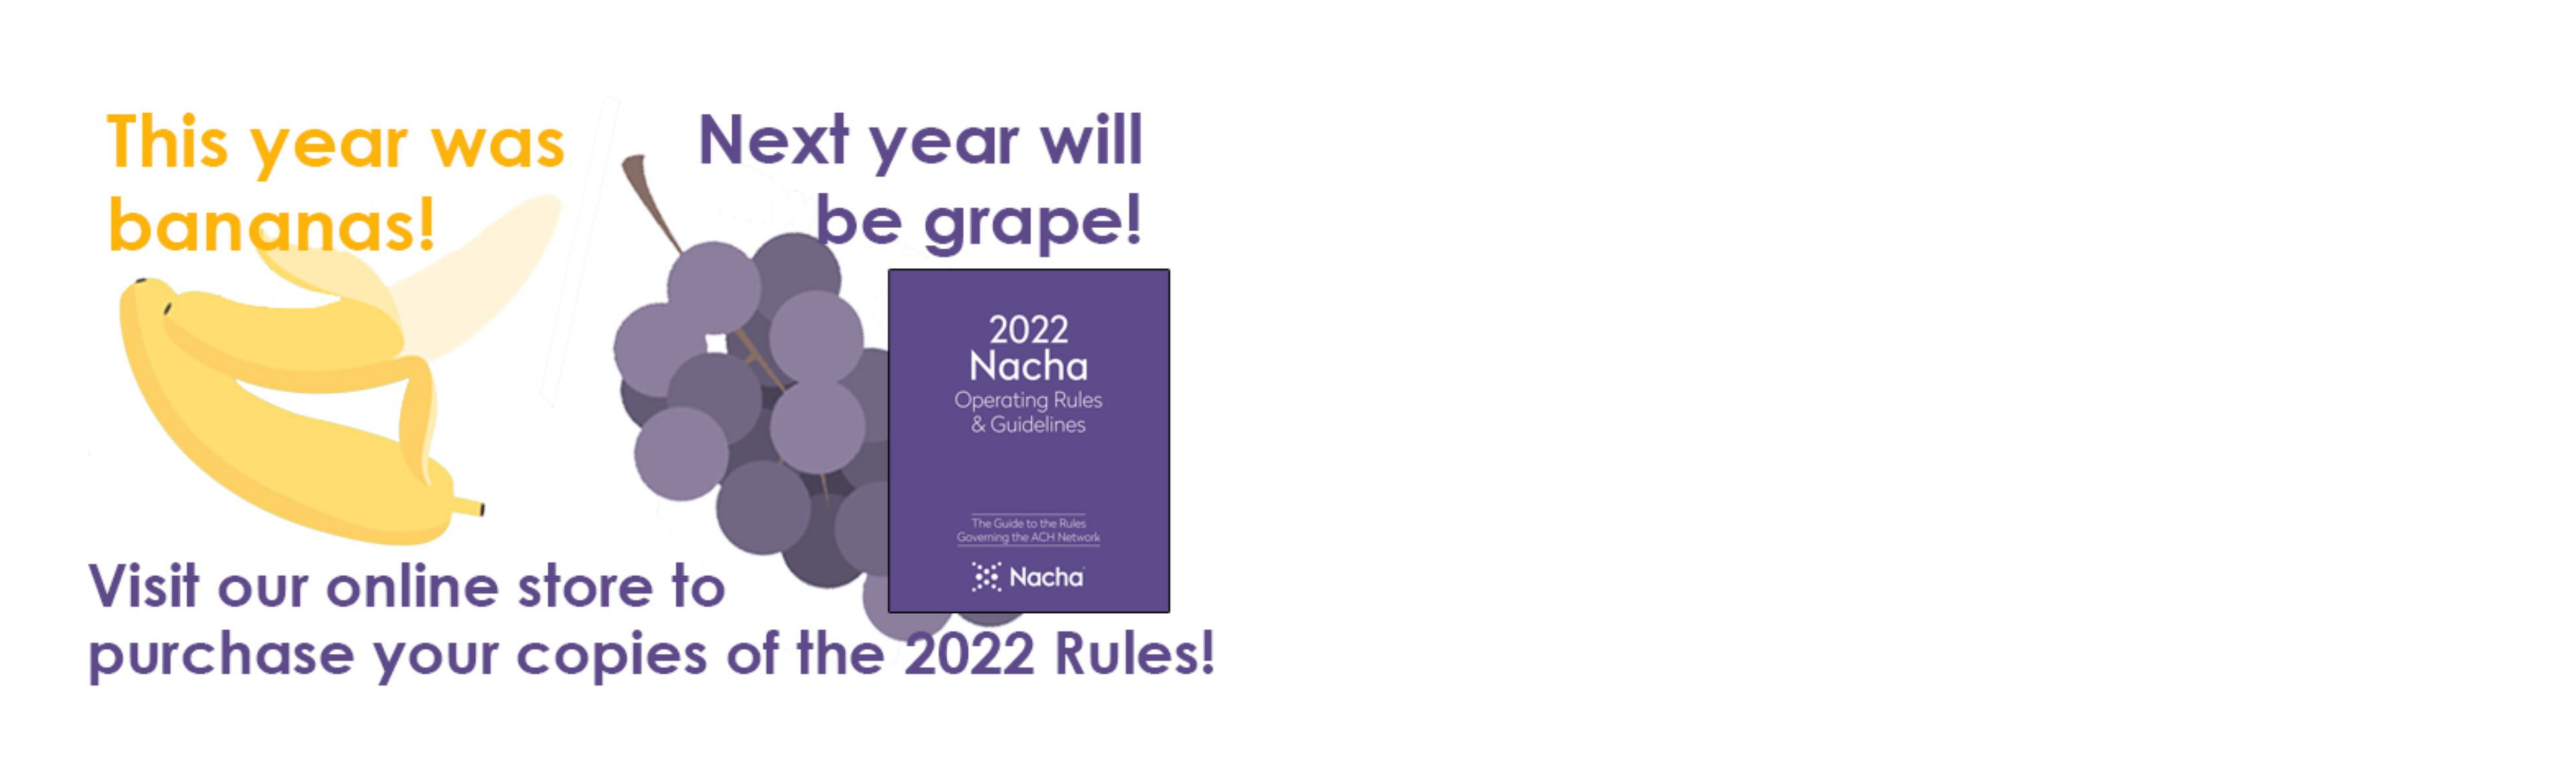 2022 Nacha Operating Rules & Guidelines